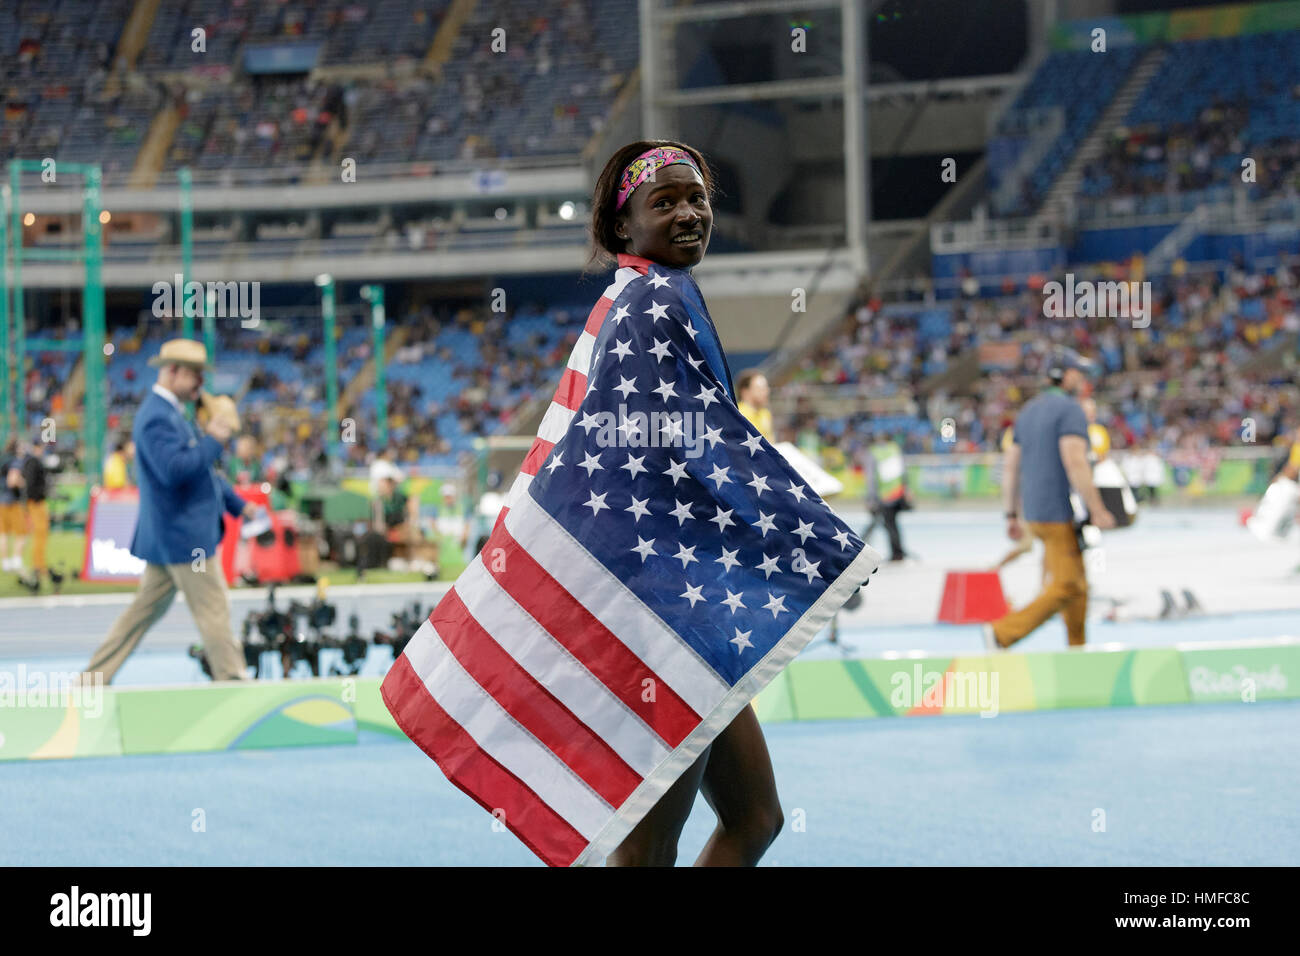 Rio de Janeiro, Brazil. 13 August 2016 Tori Bowie (USA) wins the silver medal in the Women's 100m at the 2016 Olympic Summer Games. ©Paul J. Sutton/PC Stock Photo